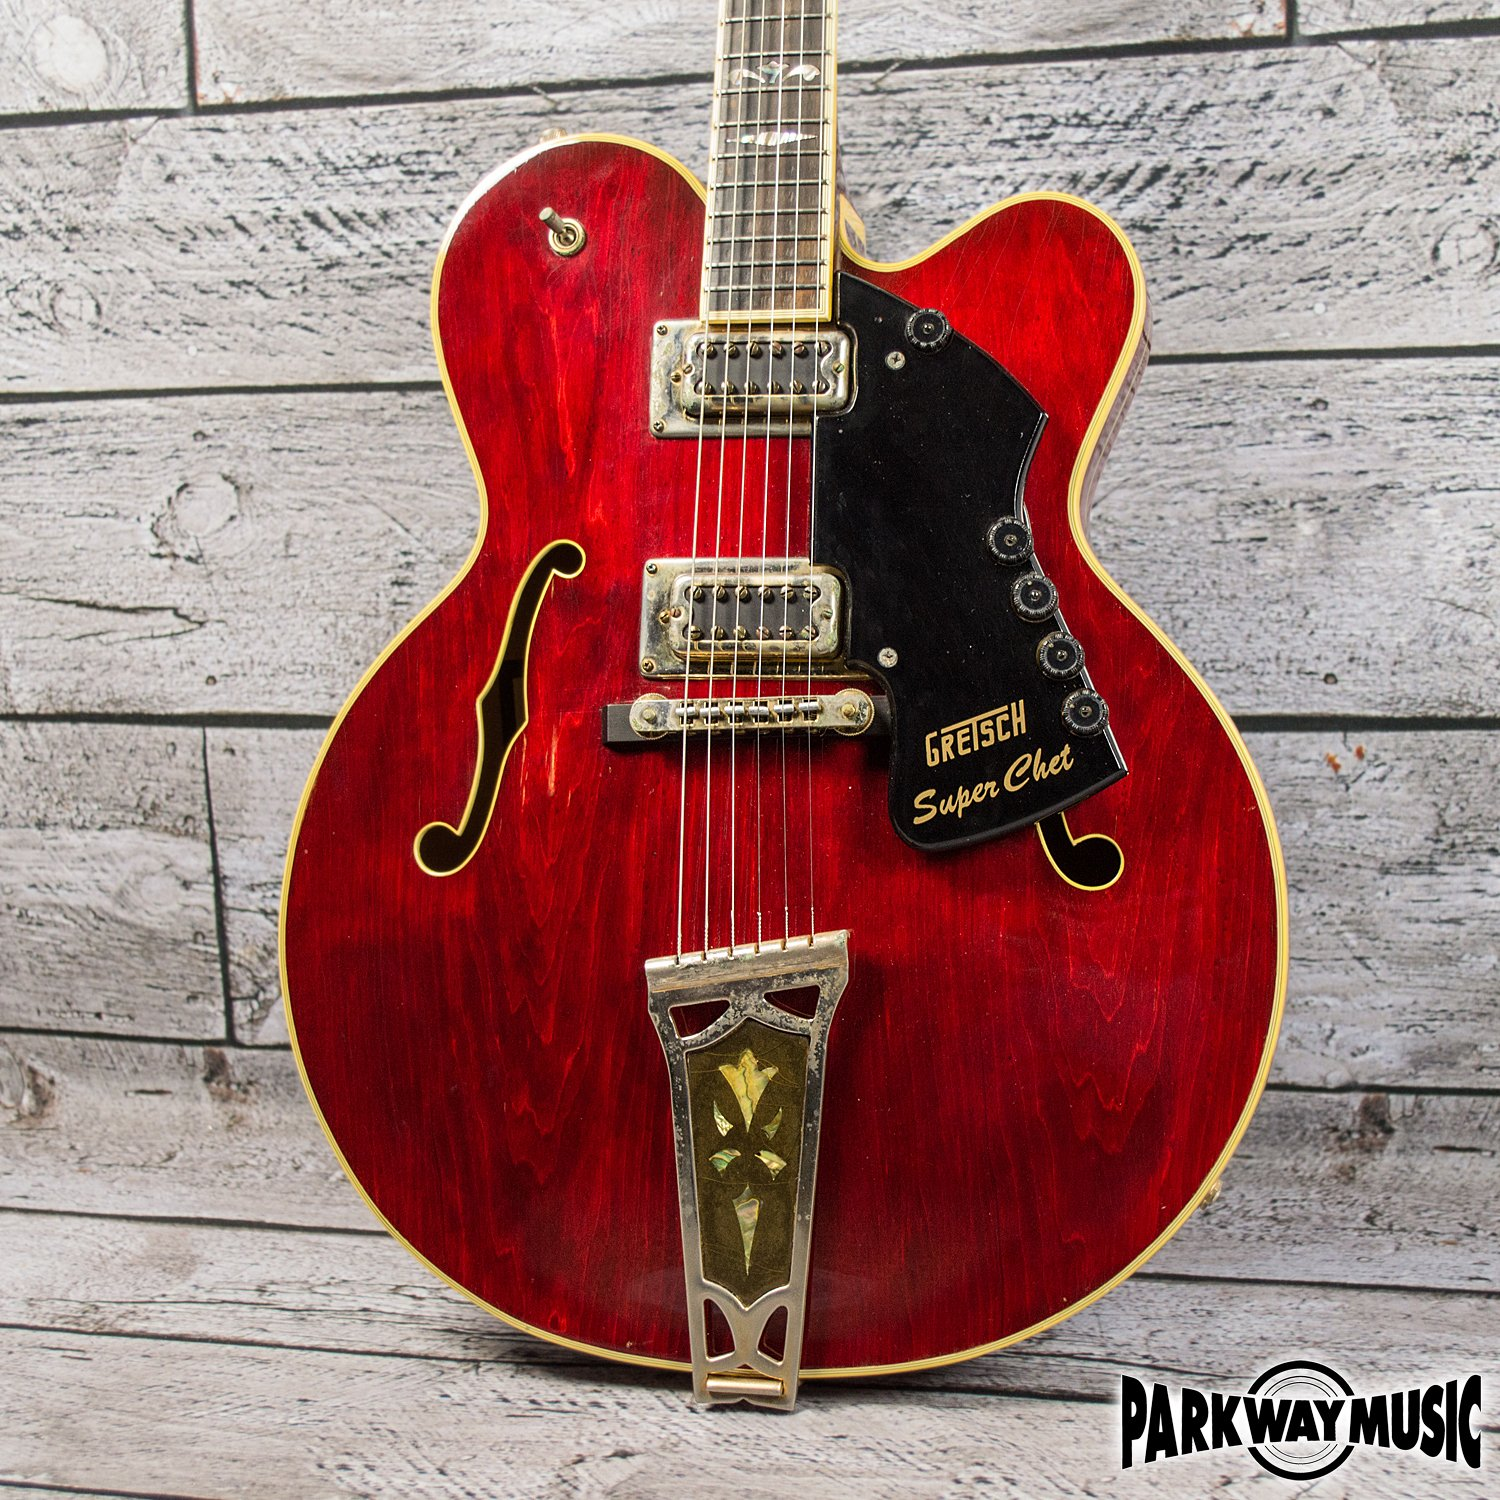 Gretsch  7690 Super Chet 1978 (USED)